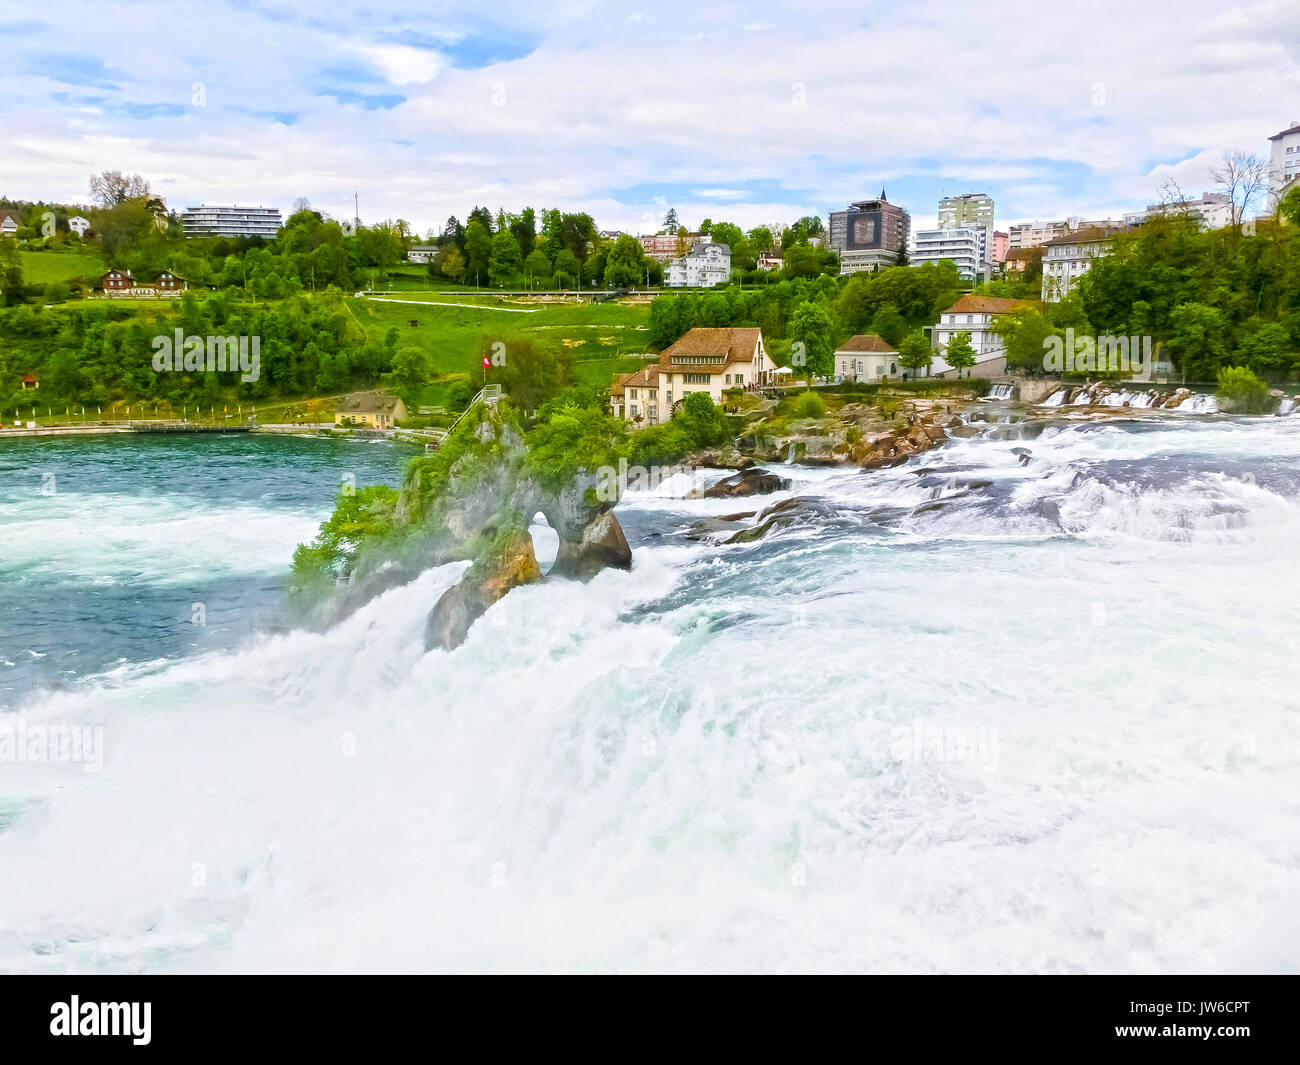 Largest waterfall in Europe by River Rhein in Switzerland Stock Photo